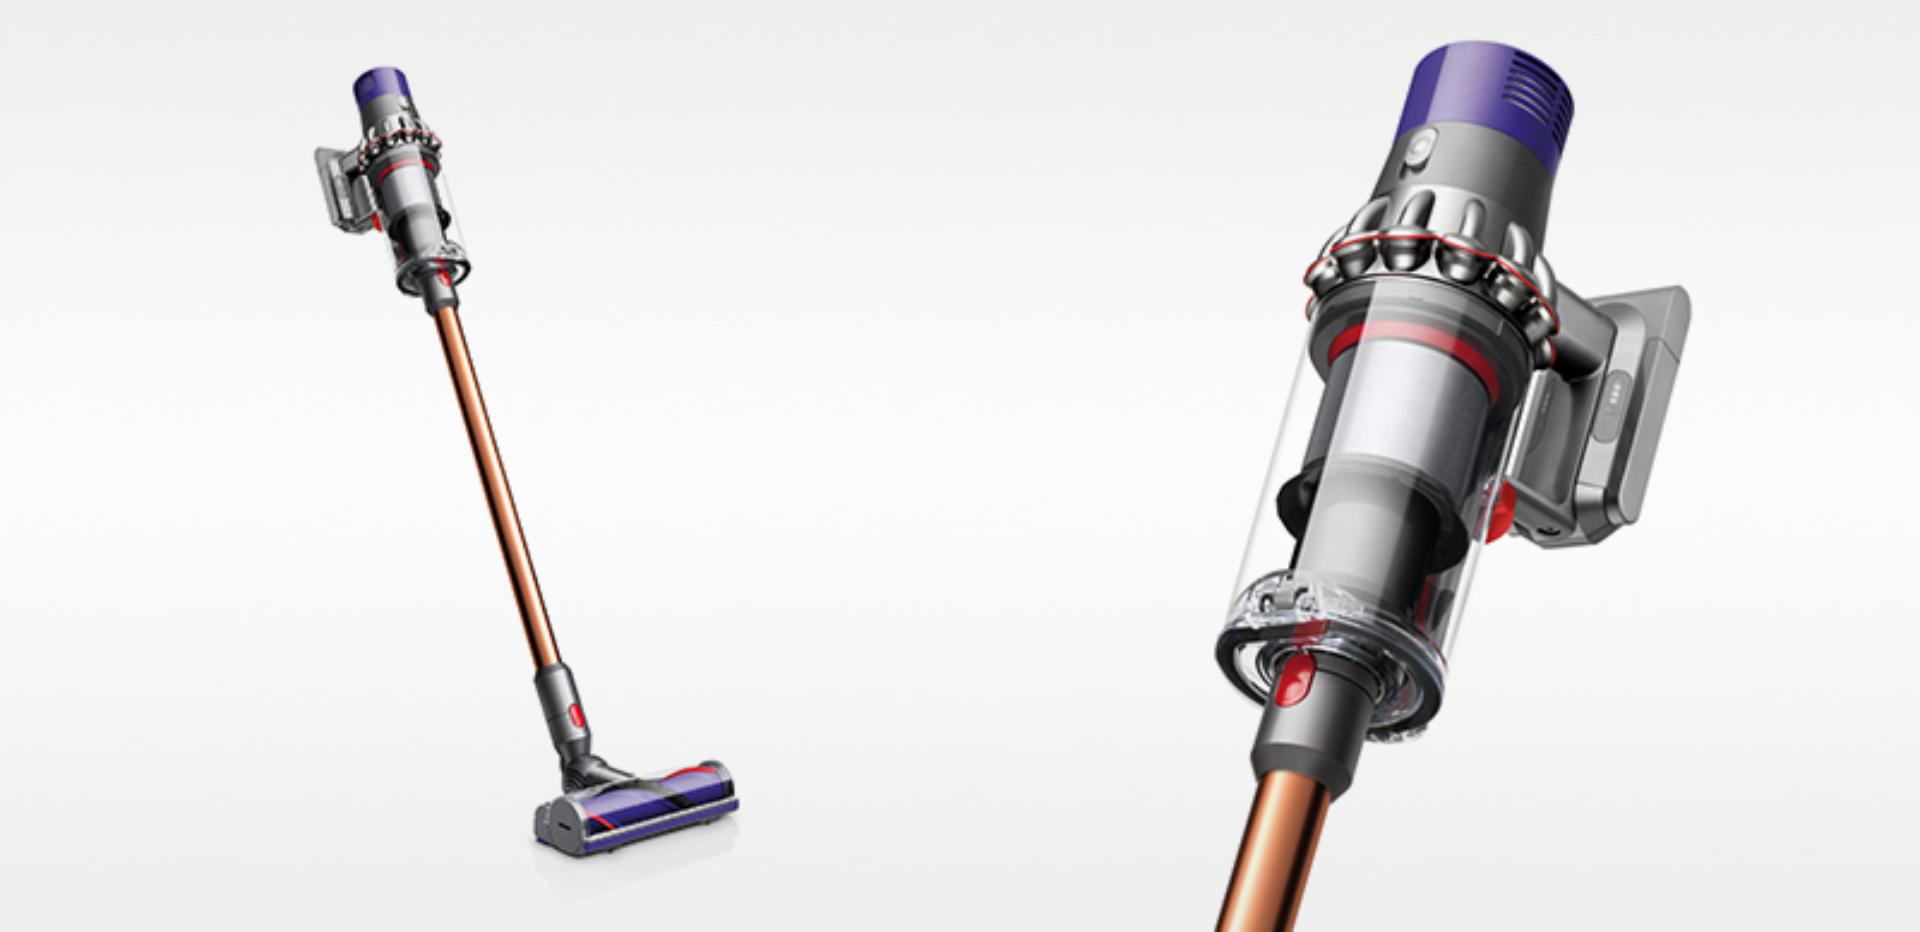 Image showing Dyson V10 Absolute